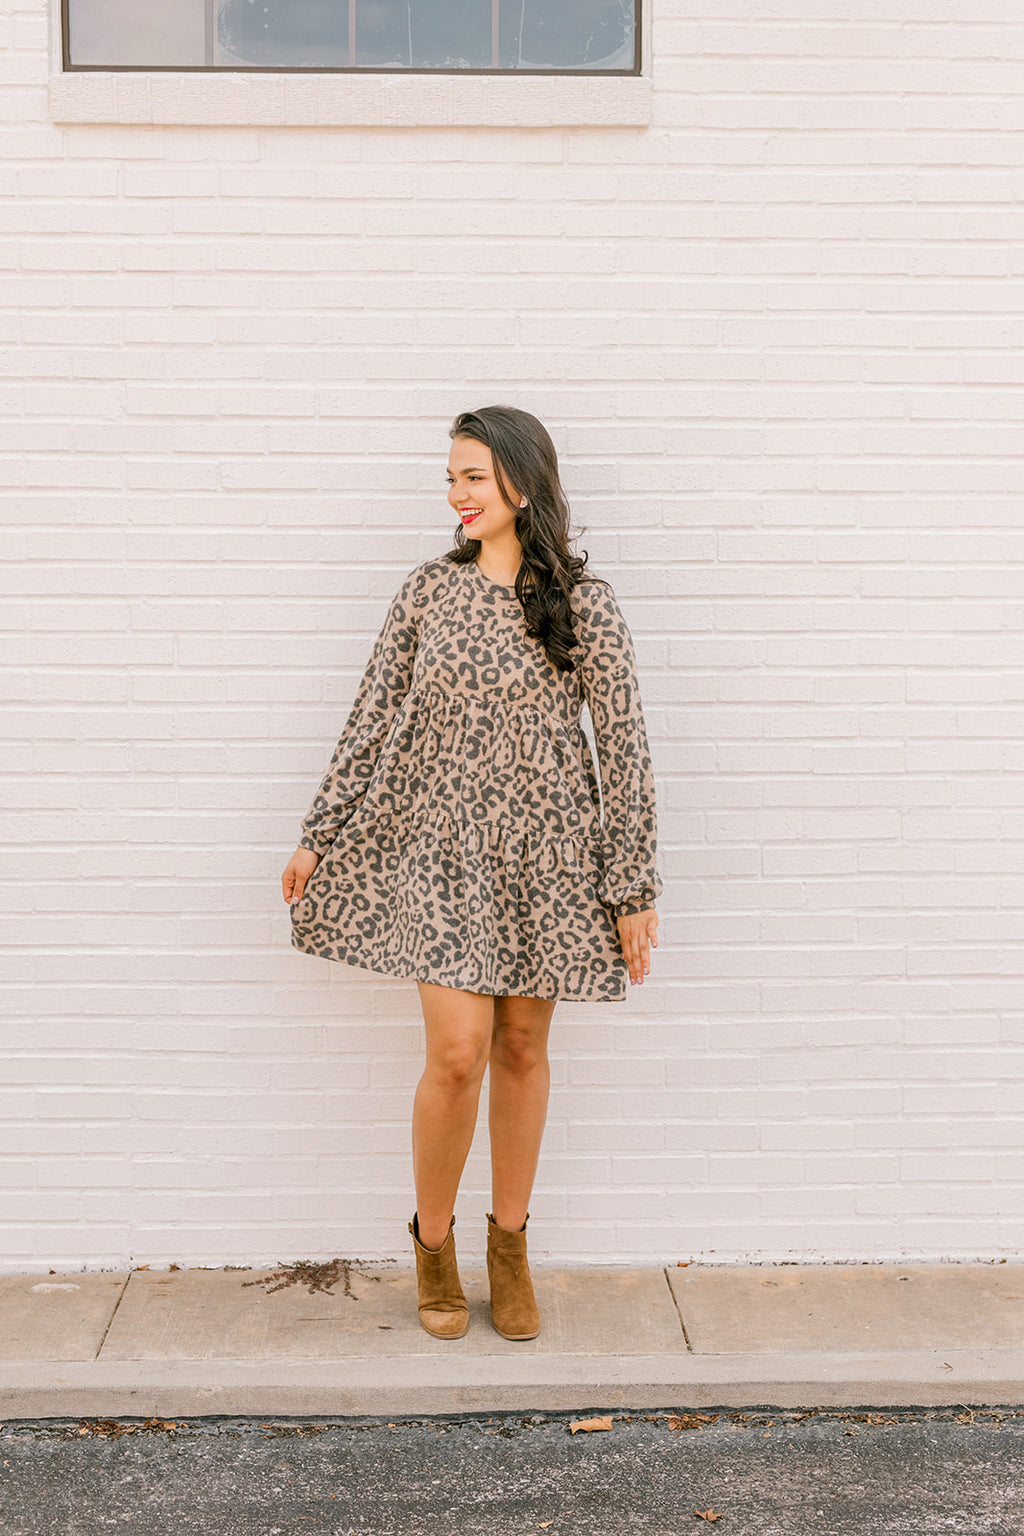 Brushed Animal Print Dress